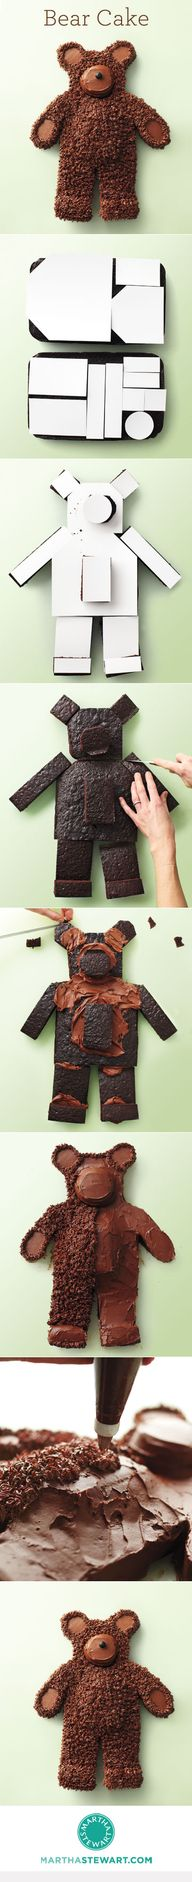 How to Make a Bear C